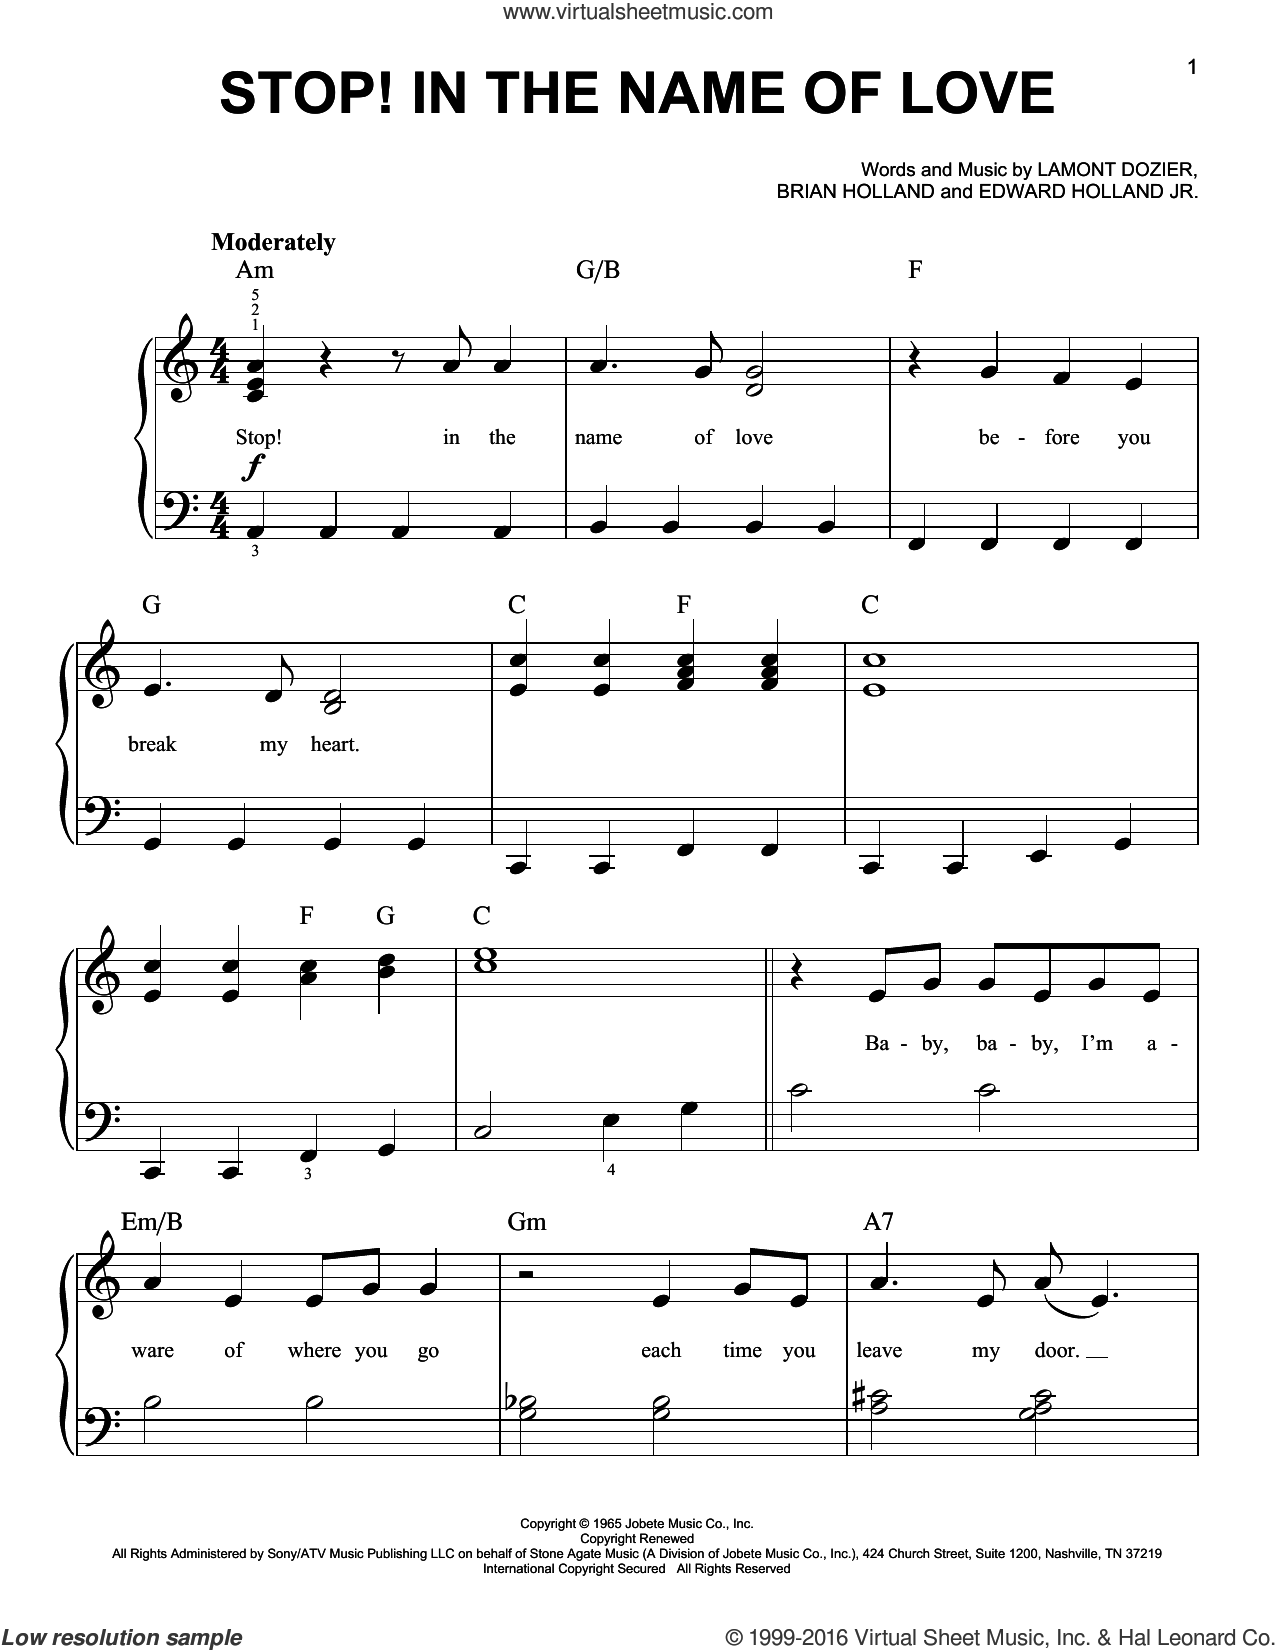 Stop! In The Name Of Love sheet music for piano solo by The Supremes, Brian Holland, Edward Holland Jr. and Lamont Dozier, easy skill level